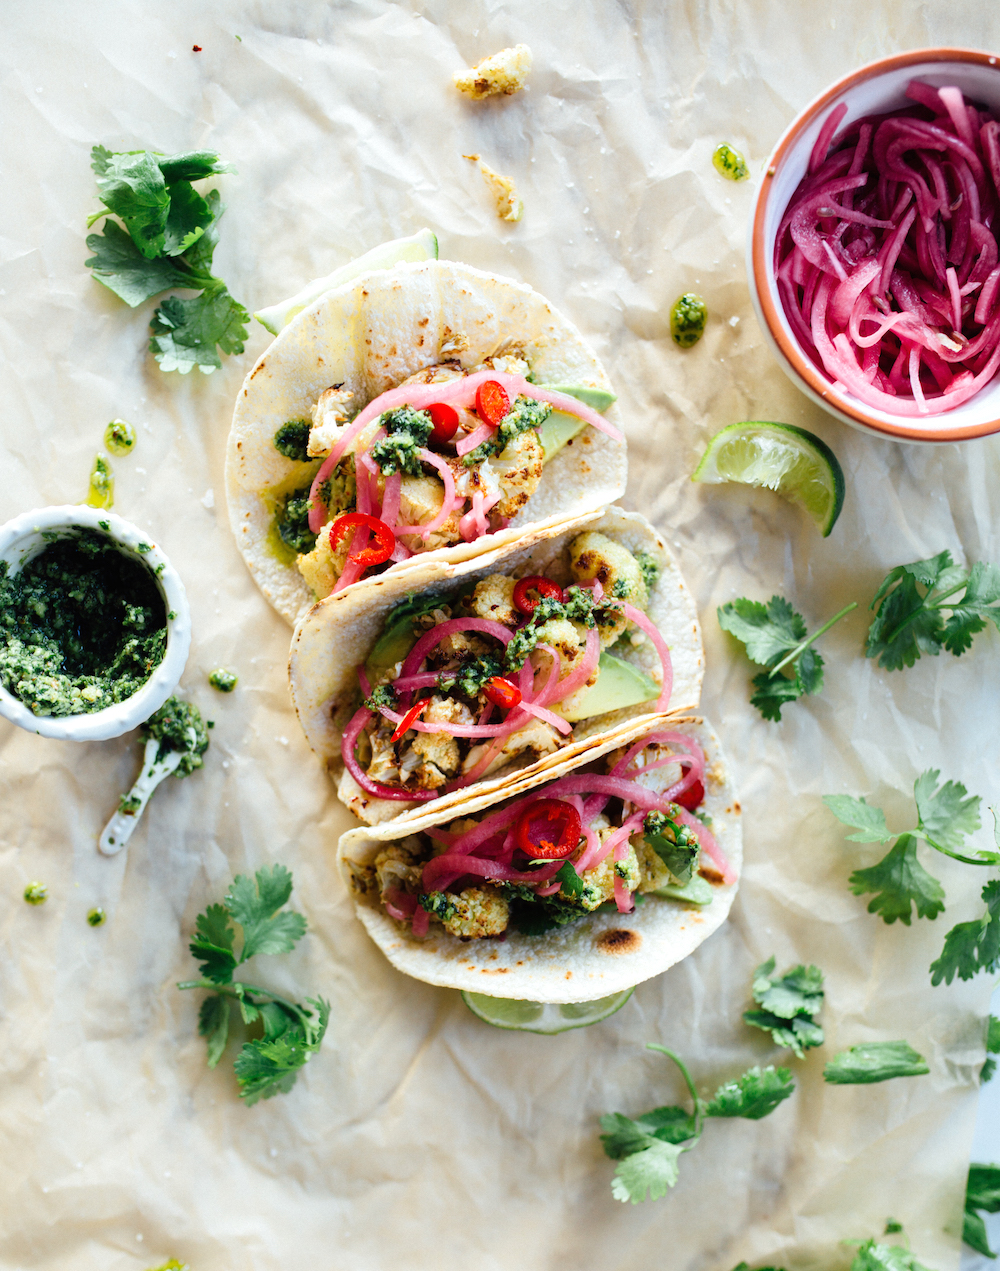 Roasted Cauliflower Tacos with Cilantro Pesto - a healthy, delicious (vegetarian!) way to satisfy those taco cravings